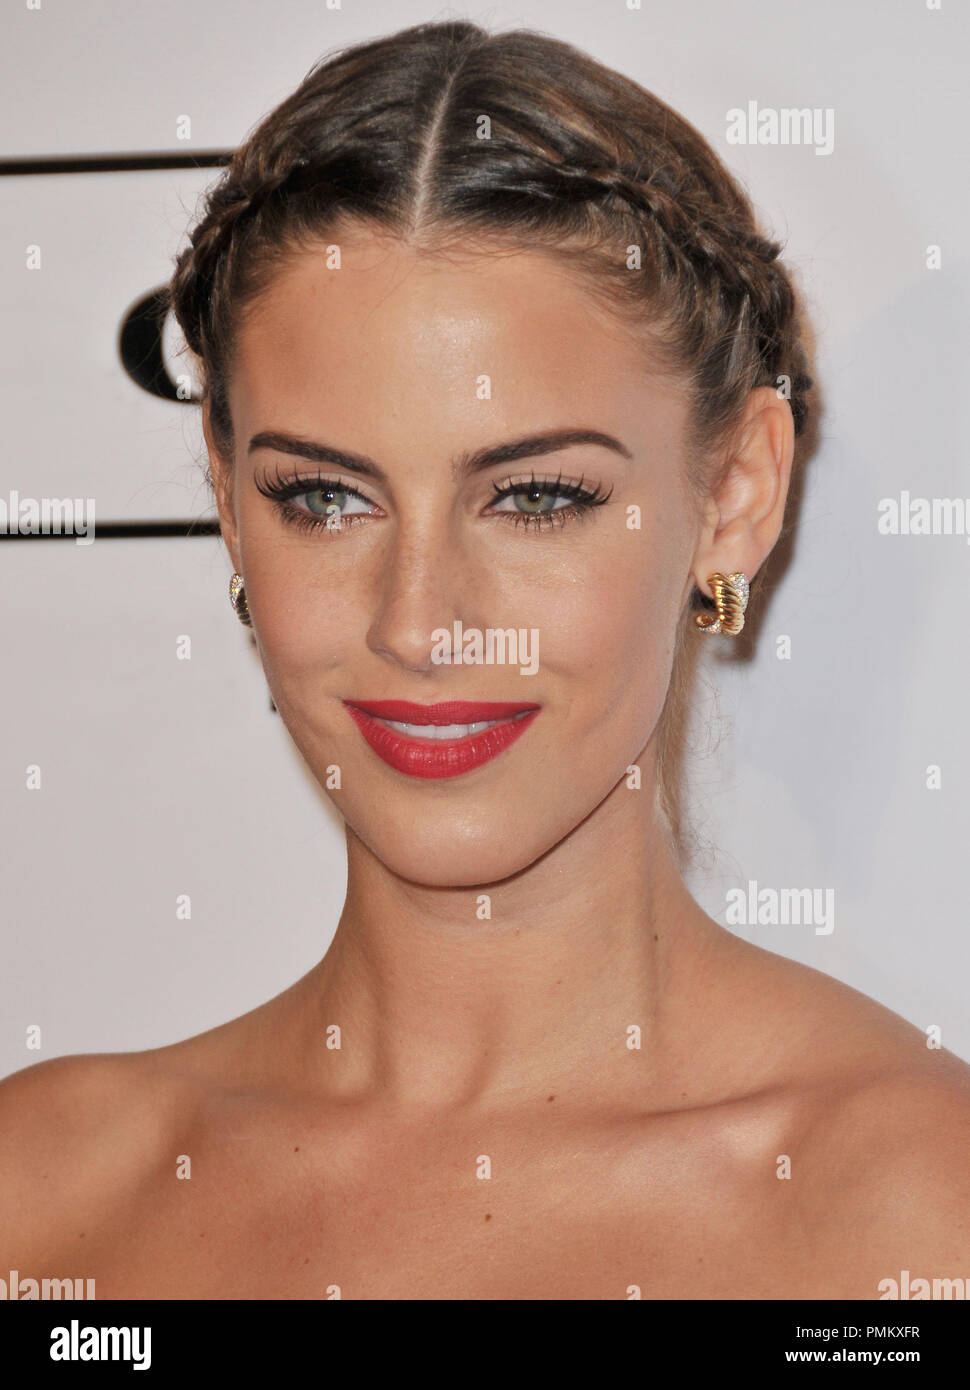 Jessica Lowndes at the 9th Annual Teen Vogue Young Hollywood Party held at the Paramount Studios in Hollywood, CA. The event took place on Friday, September 23, 2011. Photo by PRPP_Pacific Rim Photo Press/ PictureLux - Stock Image